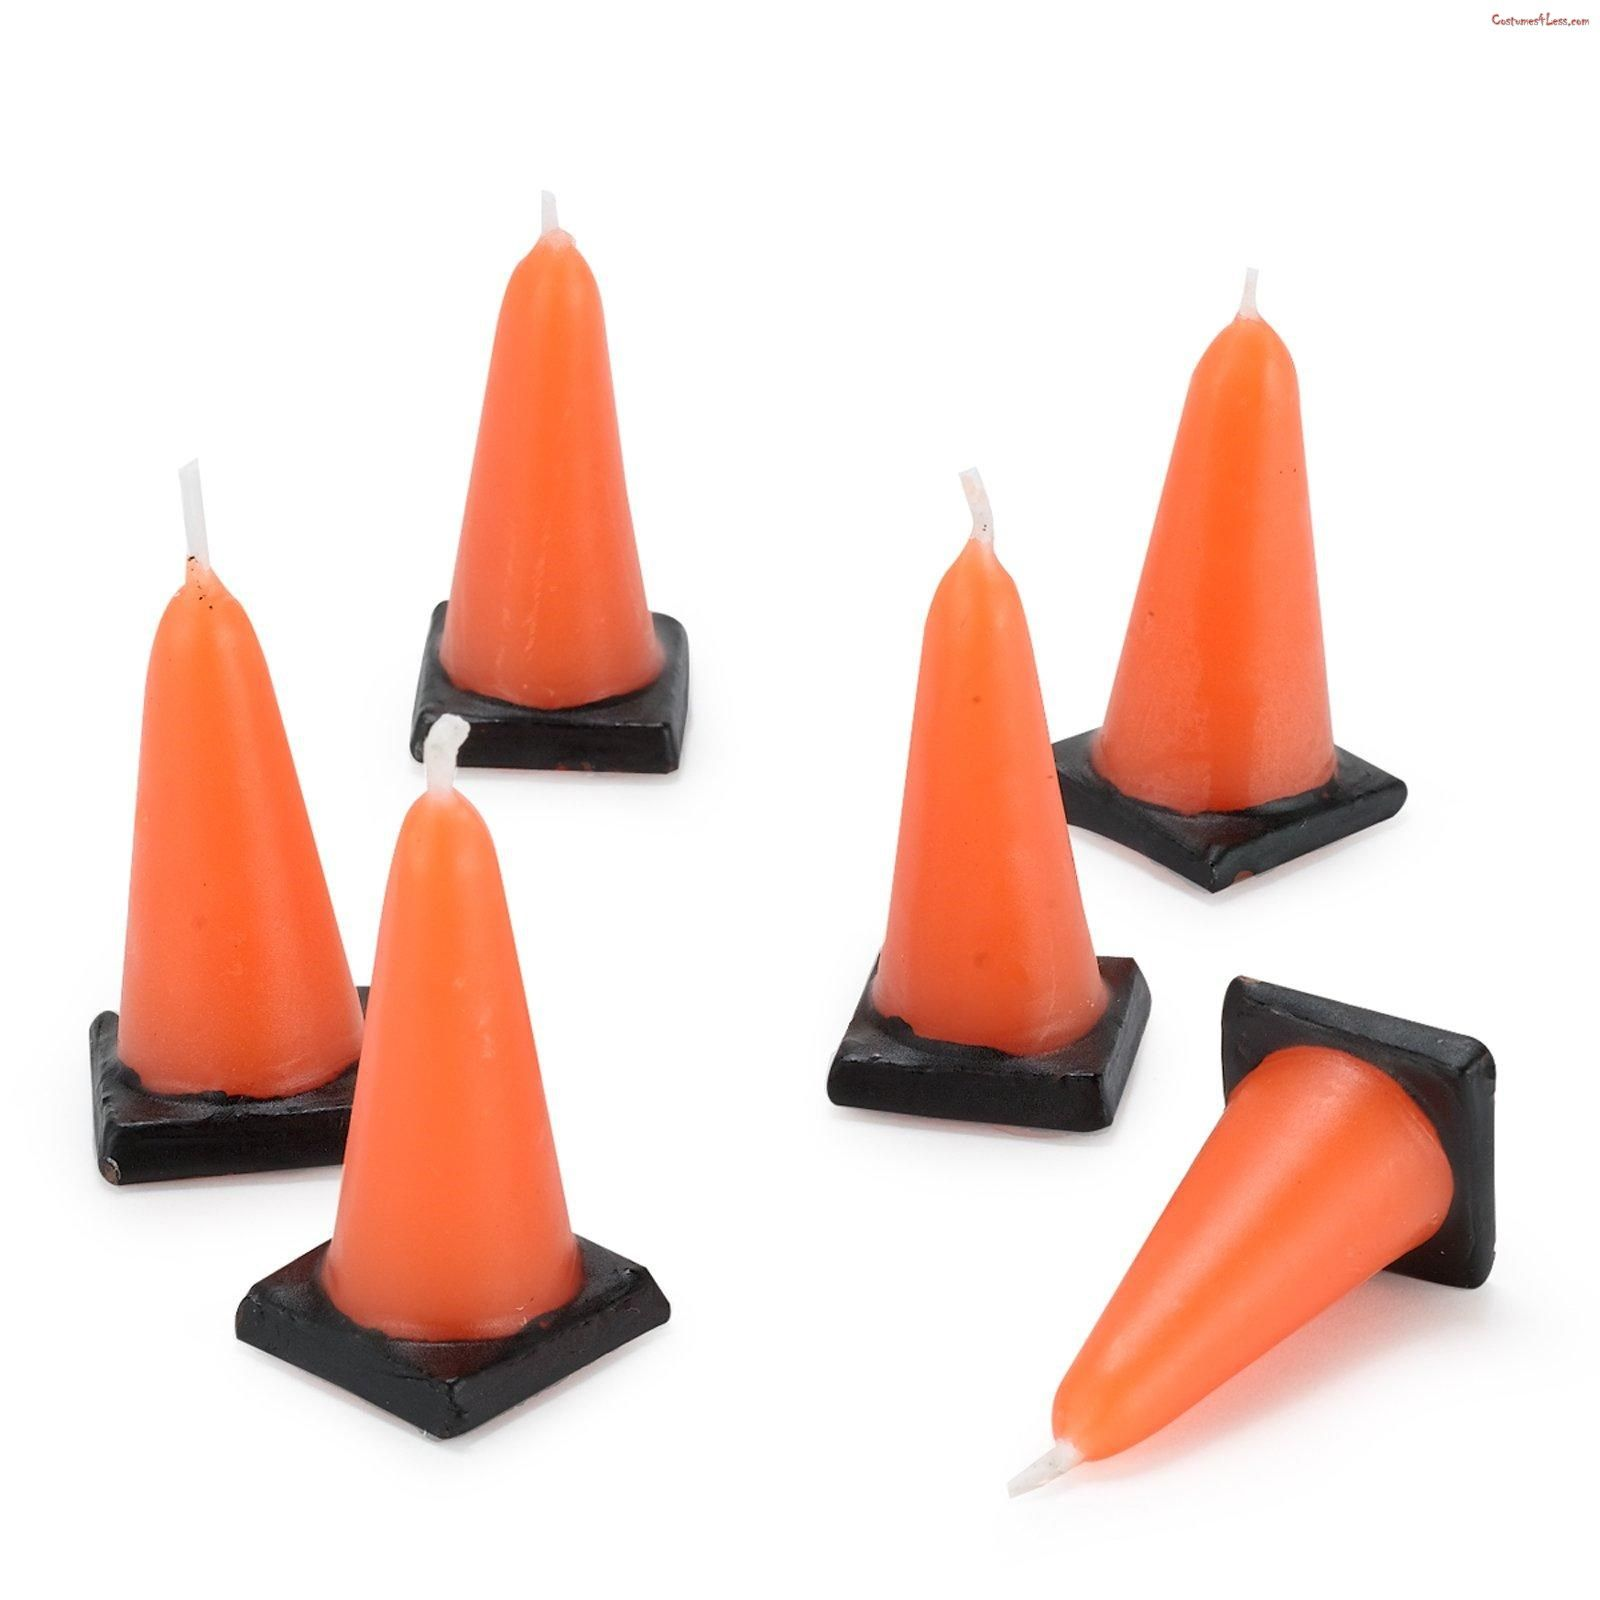 Construction Cone Molded Candles (6 count) Ad en 2019